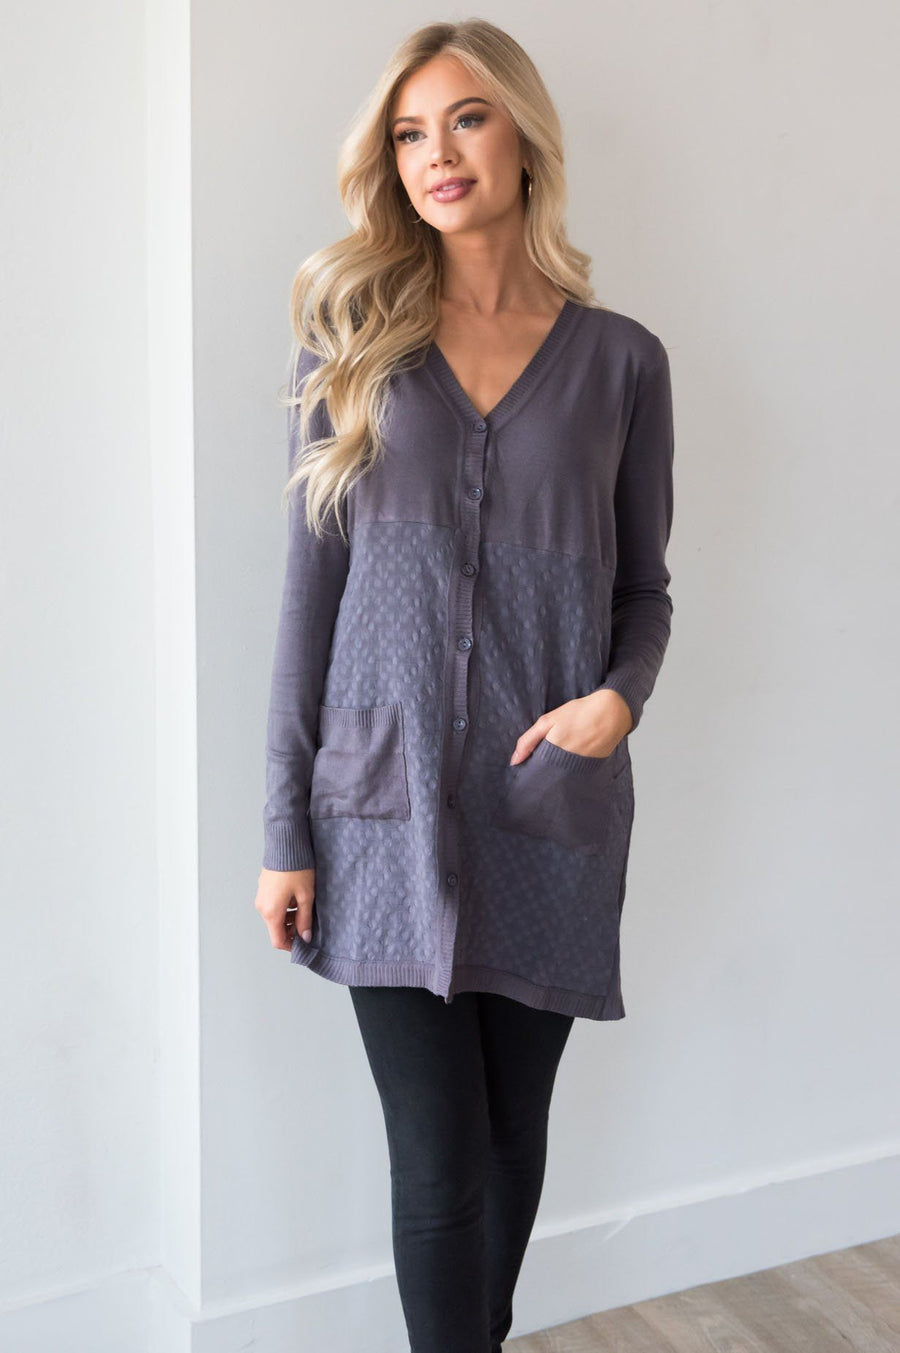 Grey Skies Ahead Modest Cardigan